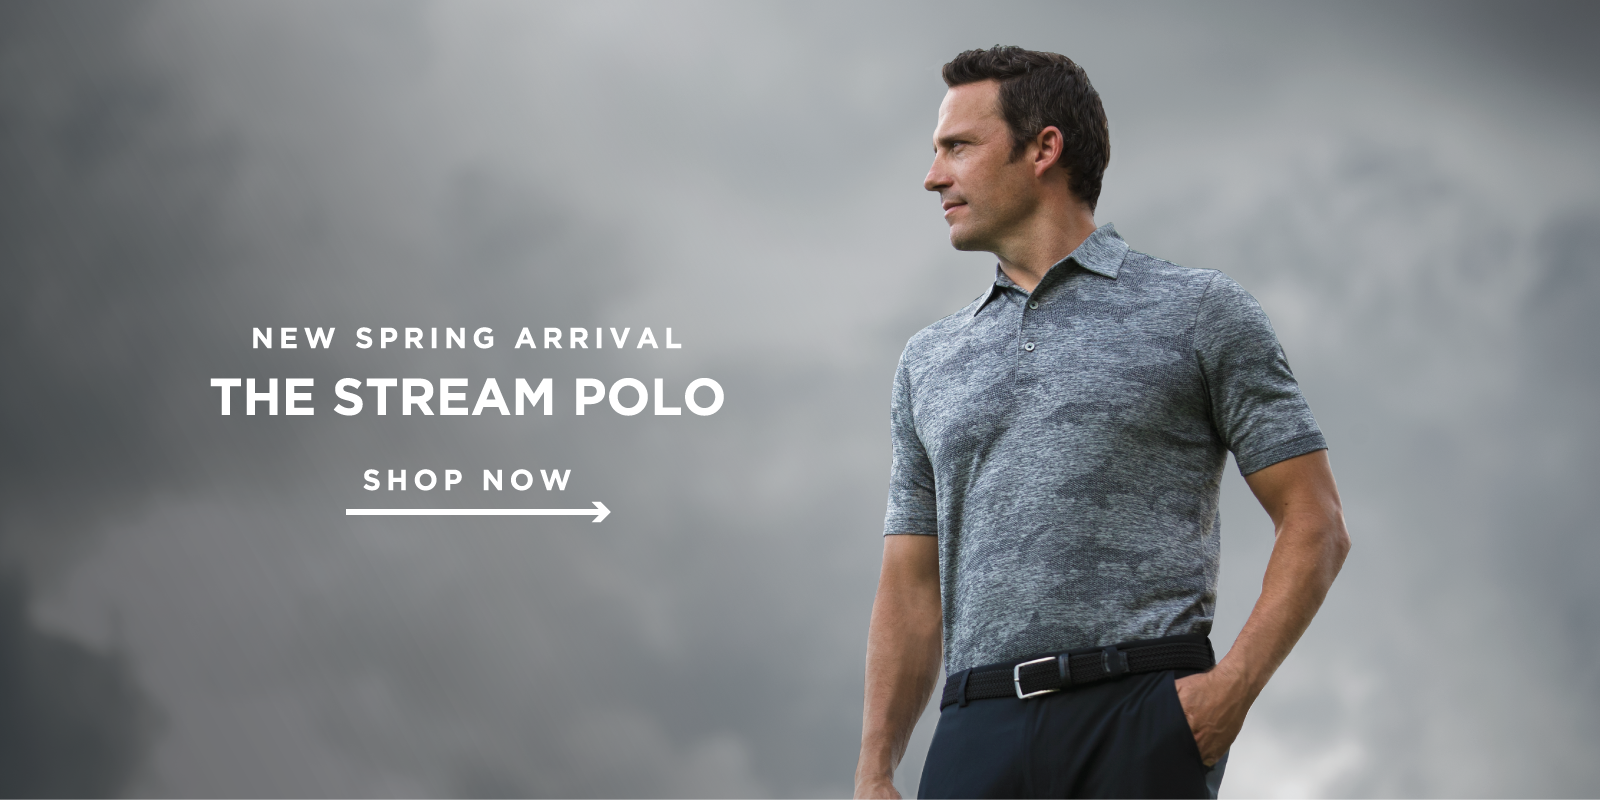 New Spring Arrival The Stream Polo Shop Now